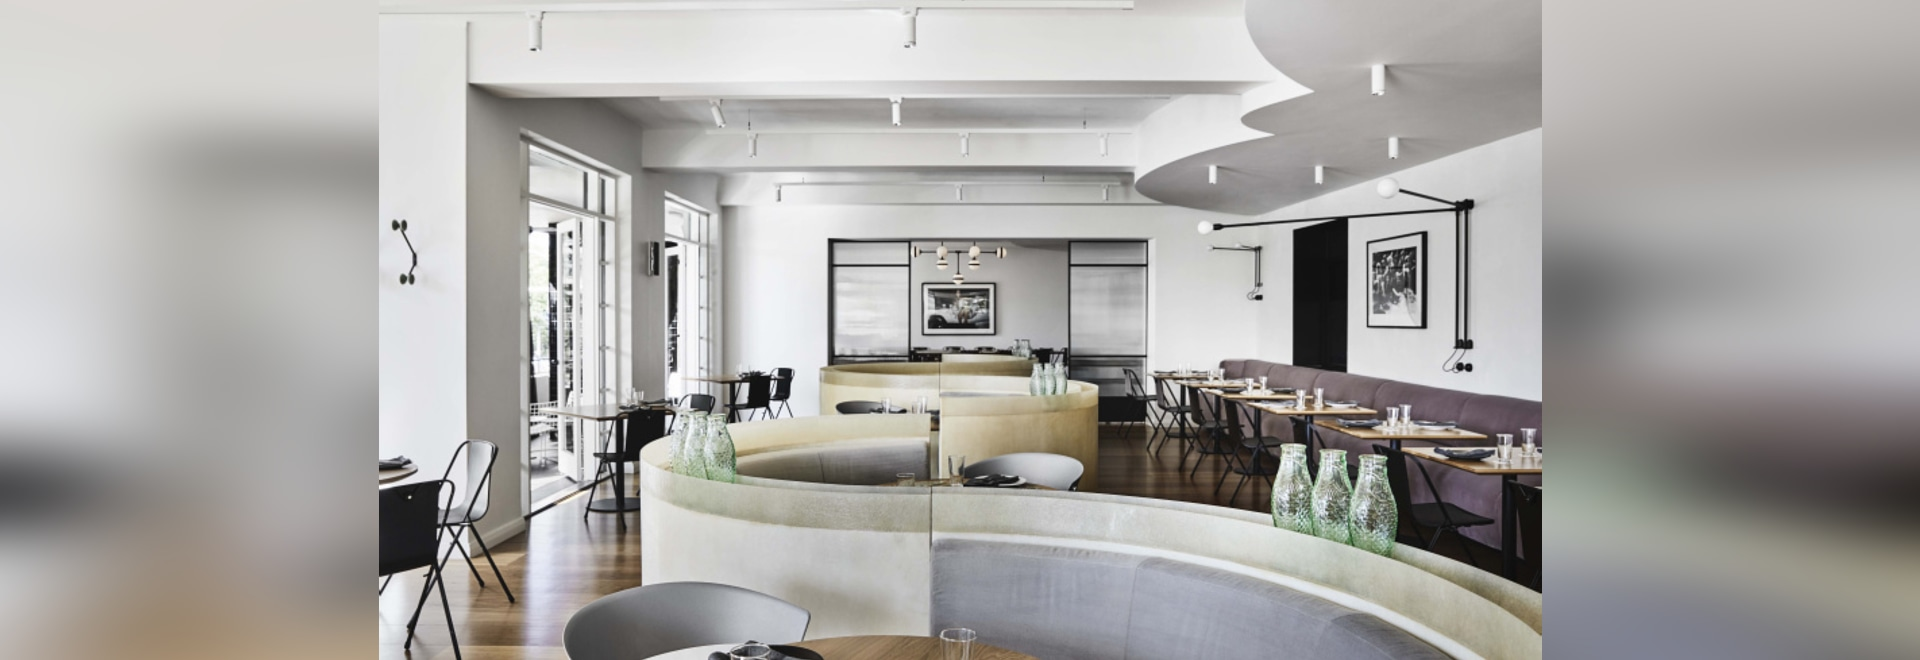 Referencing the geometry of the late Art Deco period, the S-shaped banquette helps zone the large open dining space, giving patrons a variety of seating options as well as privacy.